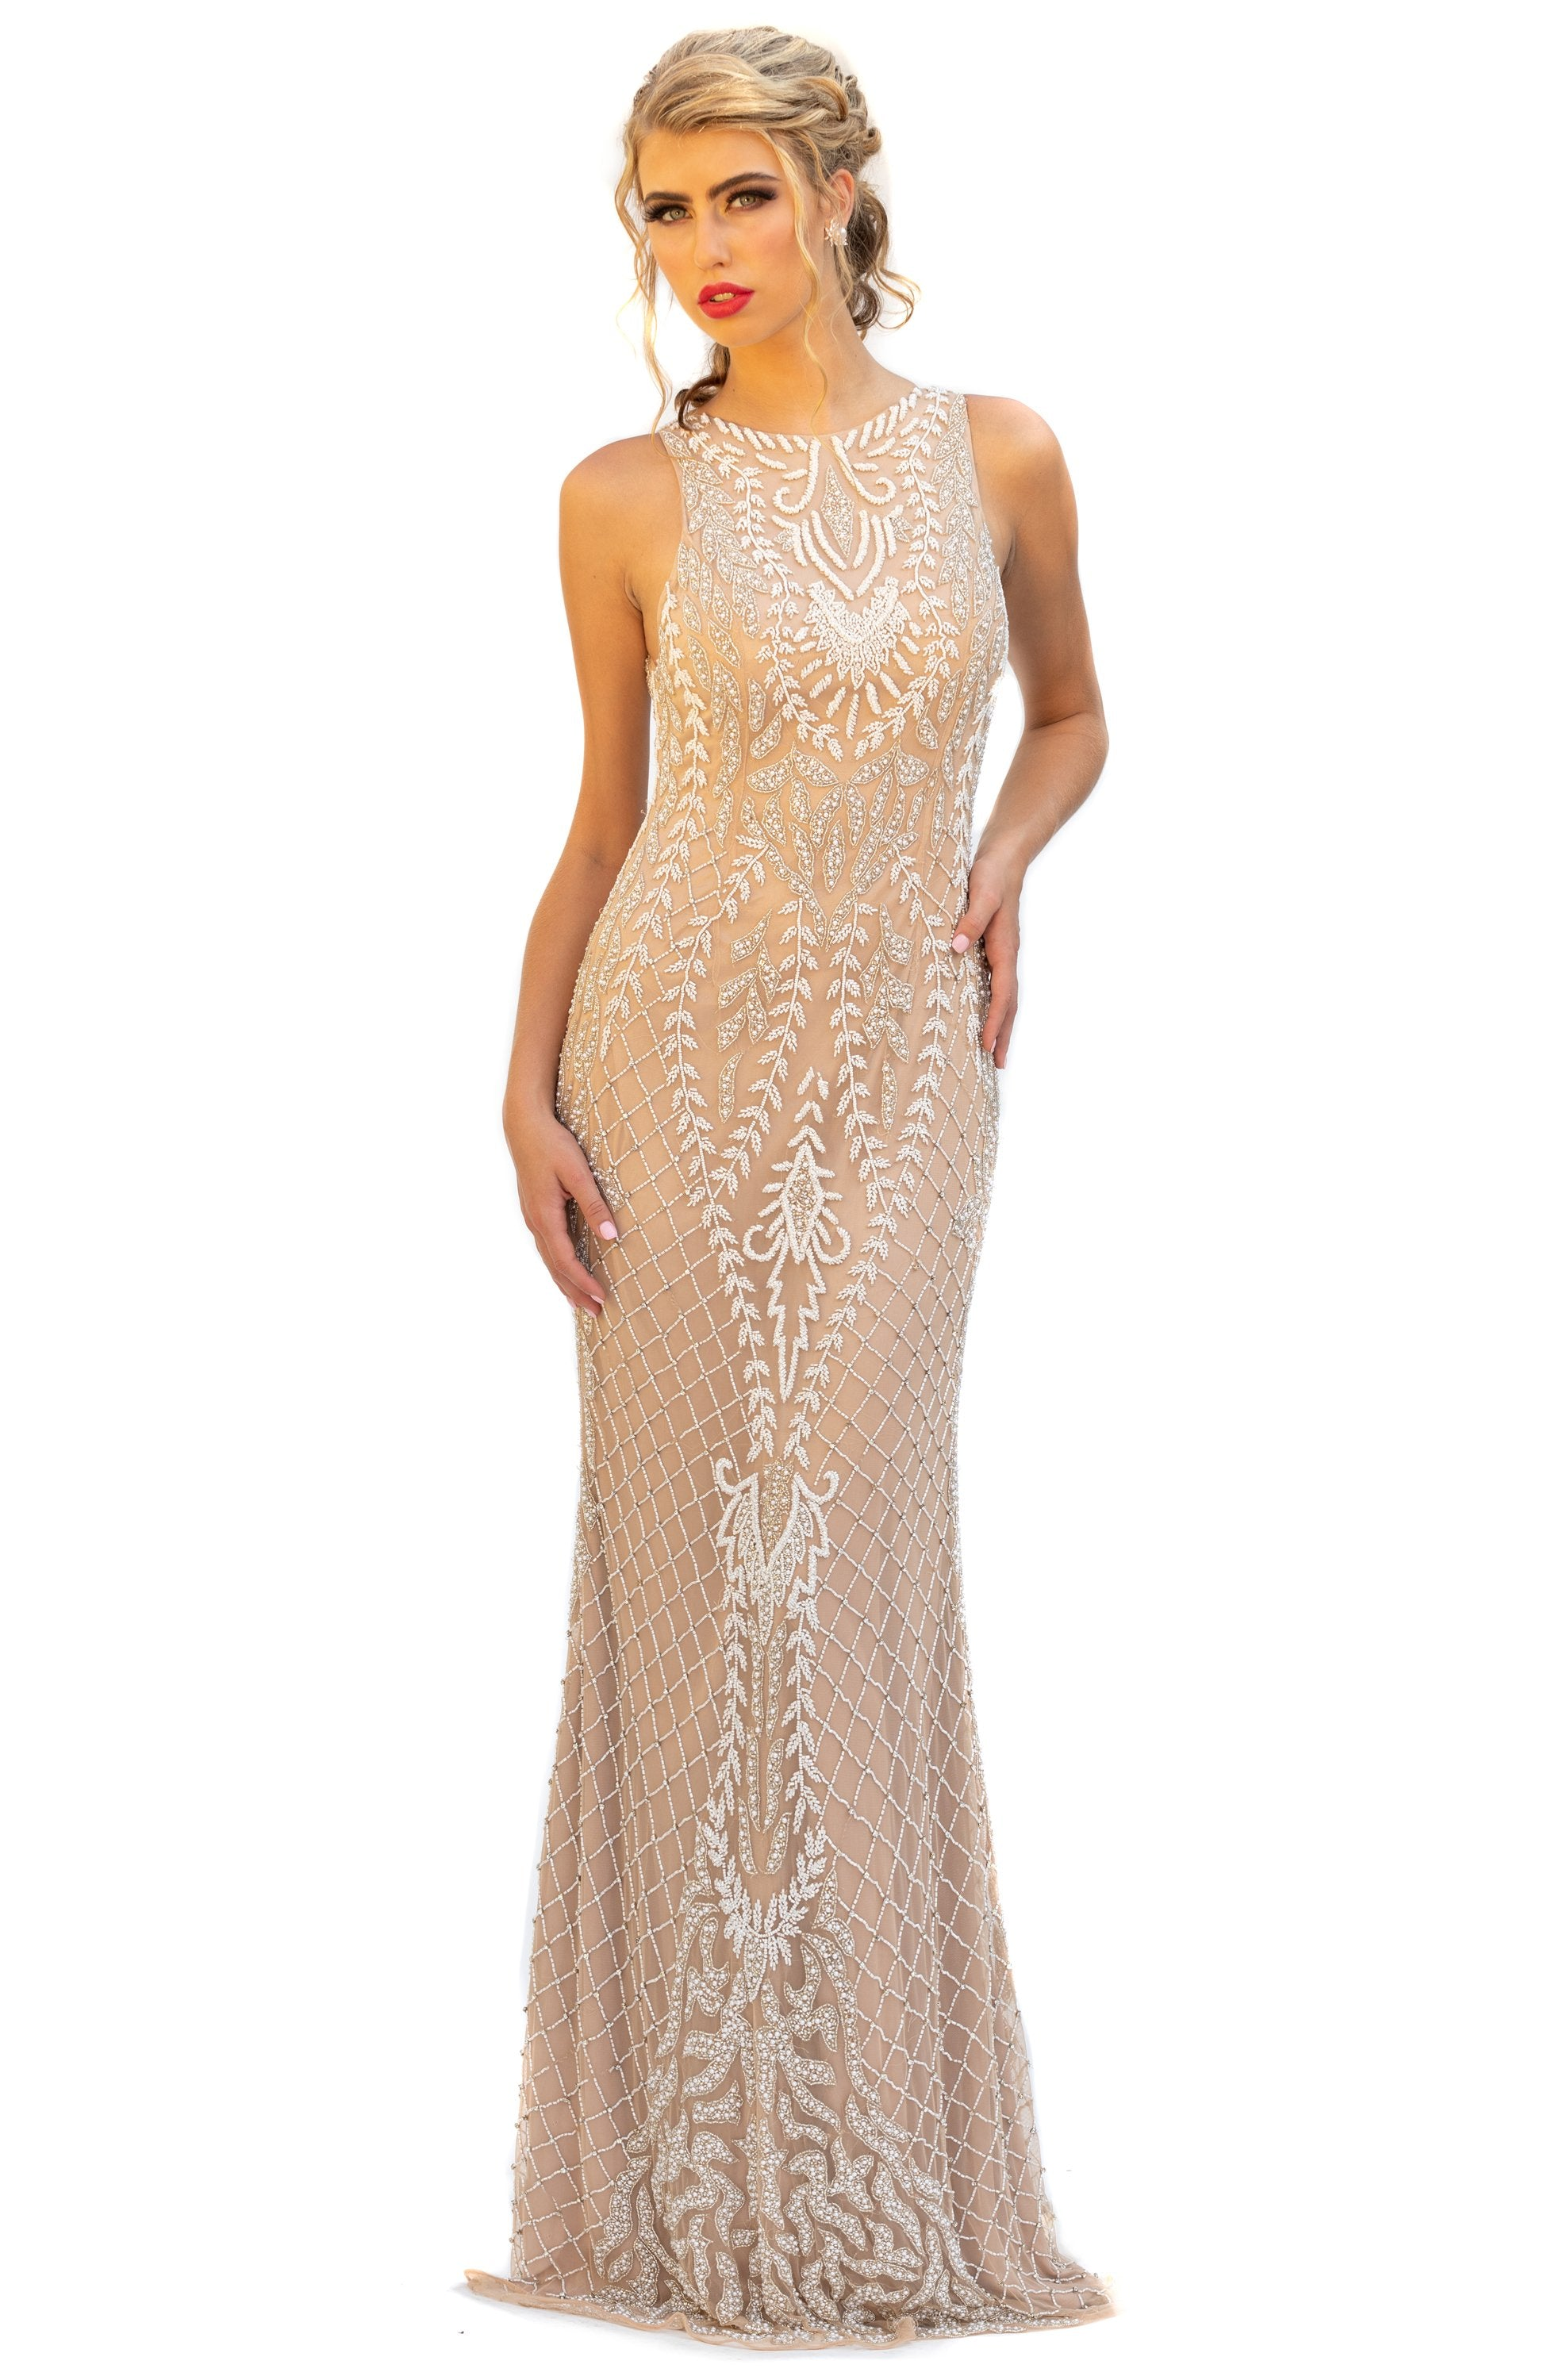 Primavera Couture - 3227 Jewel Neck Intricate Beaded Sheath Gown In Neutral